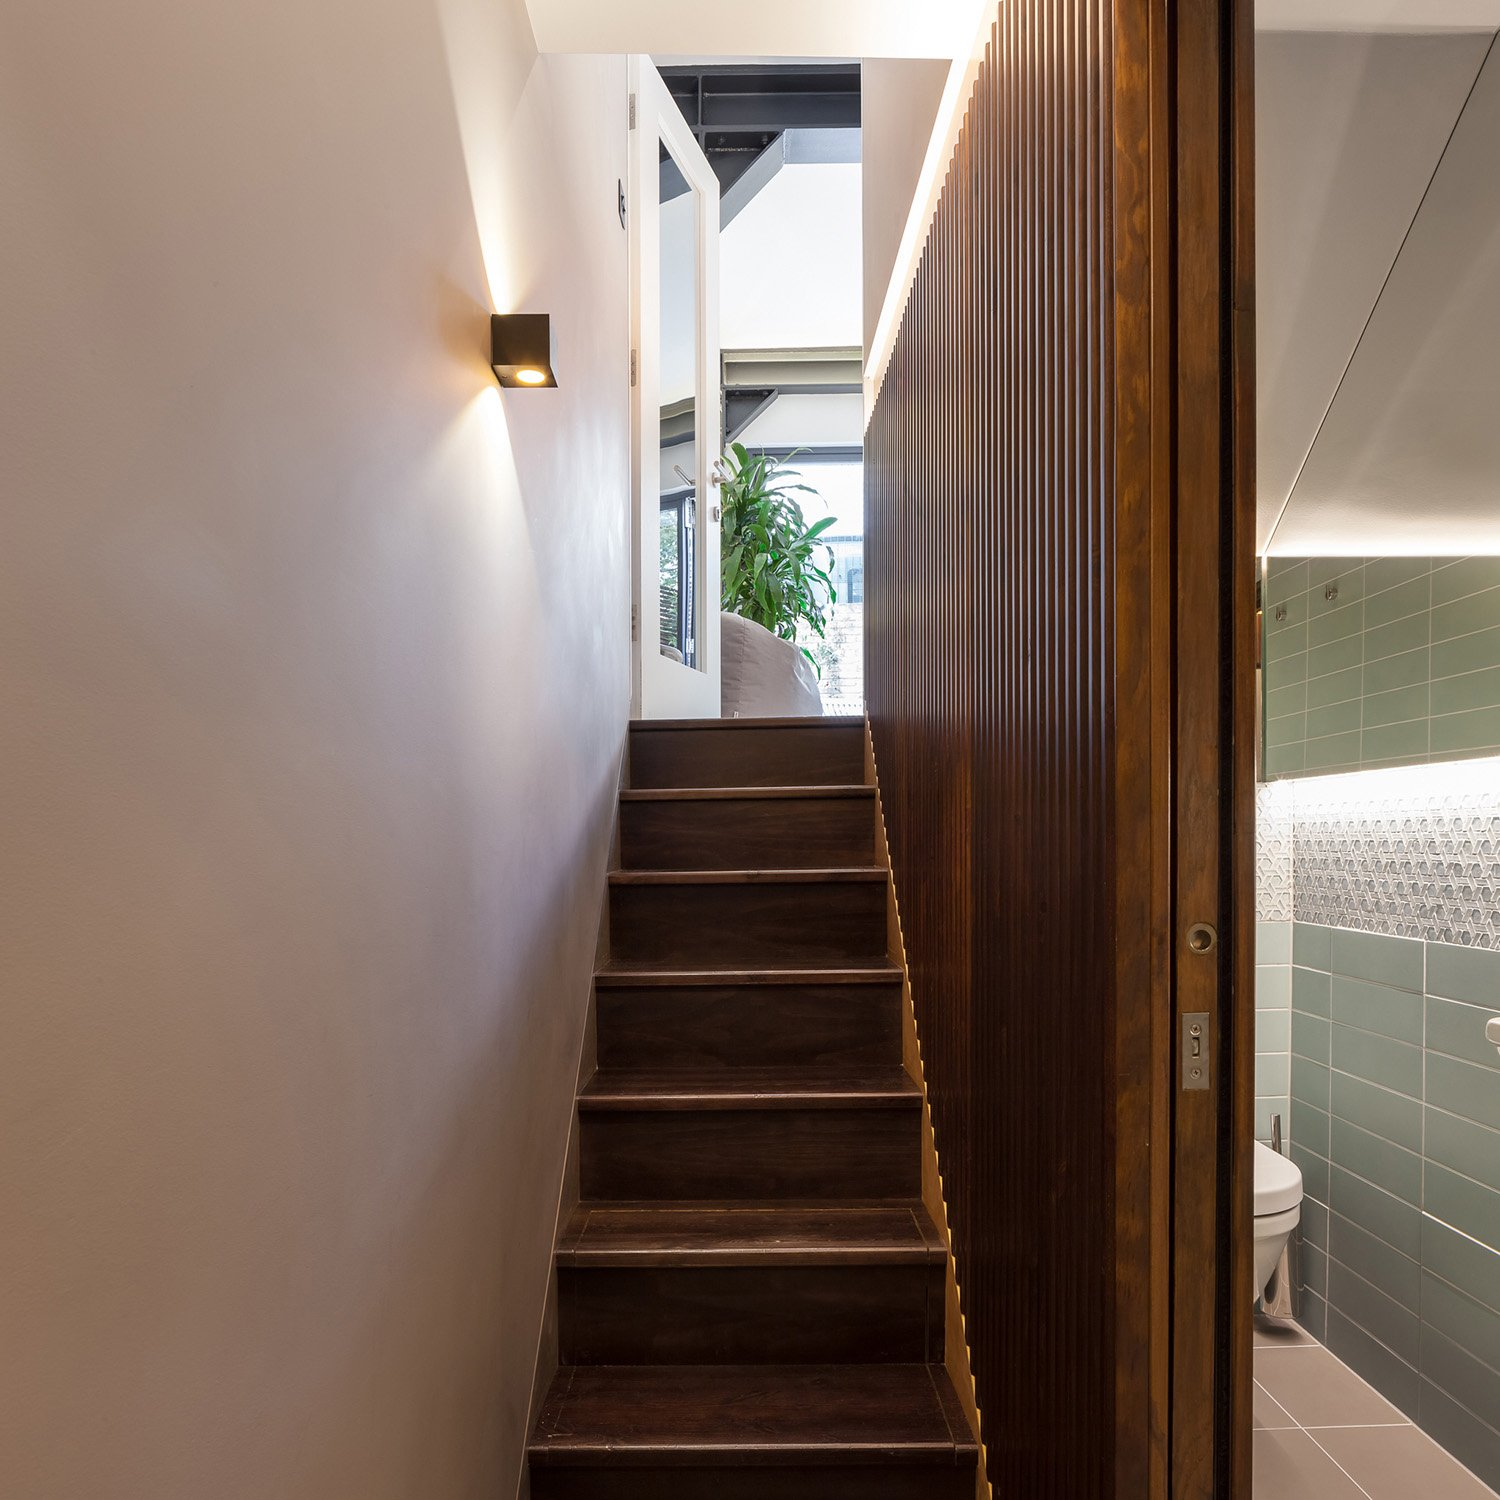 Timber cladding in the basement leading to the kitchen Peter Landers